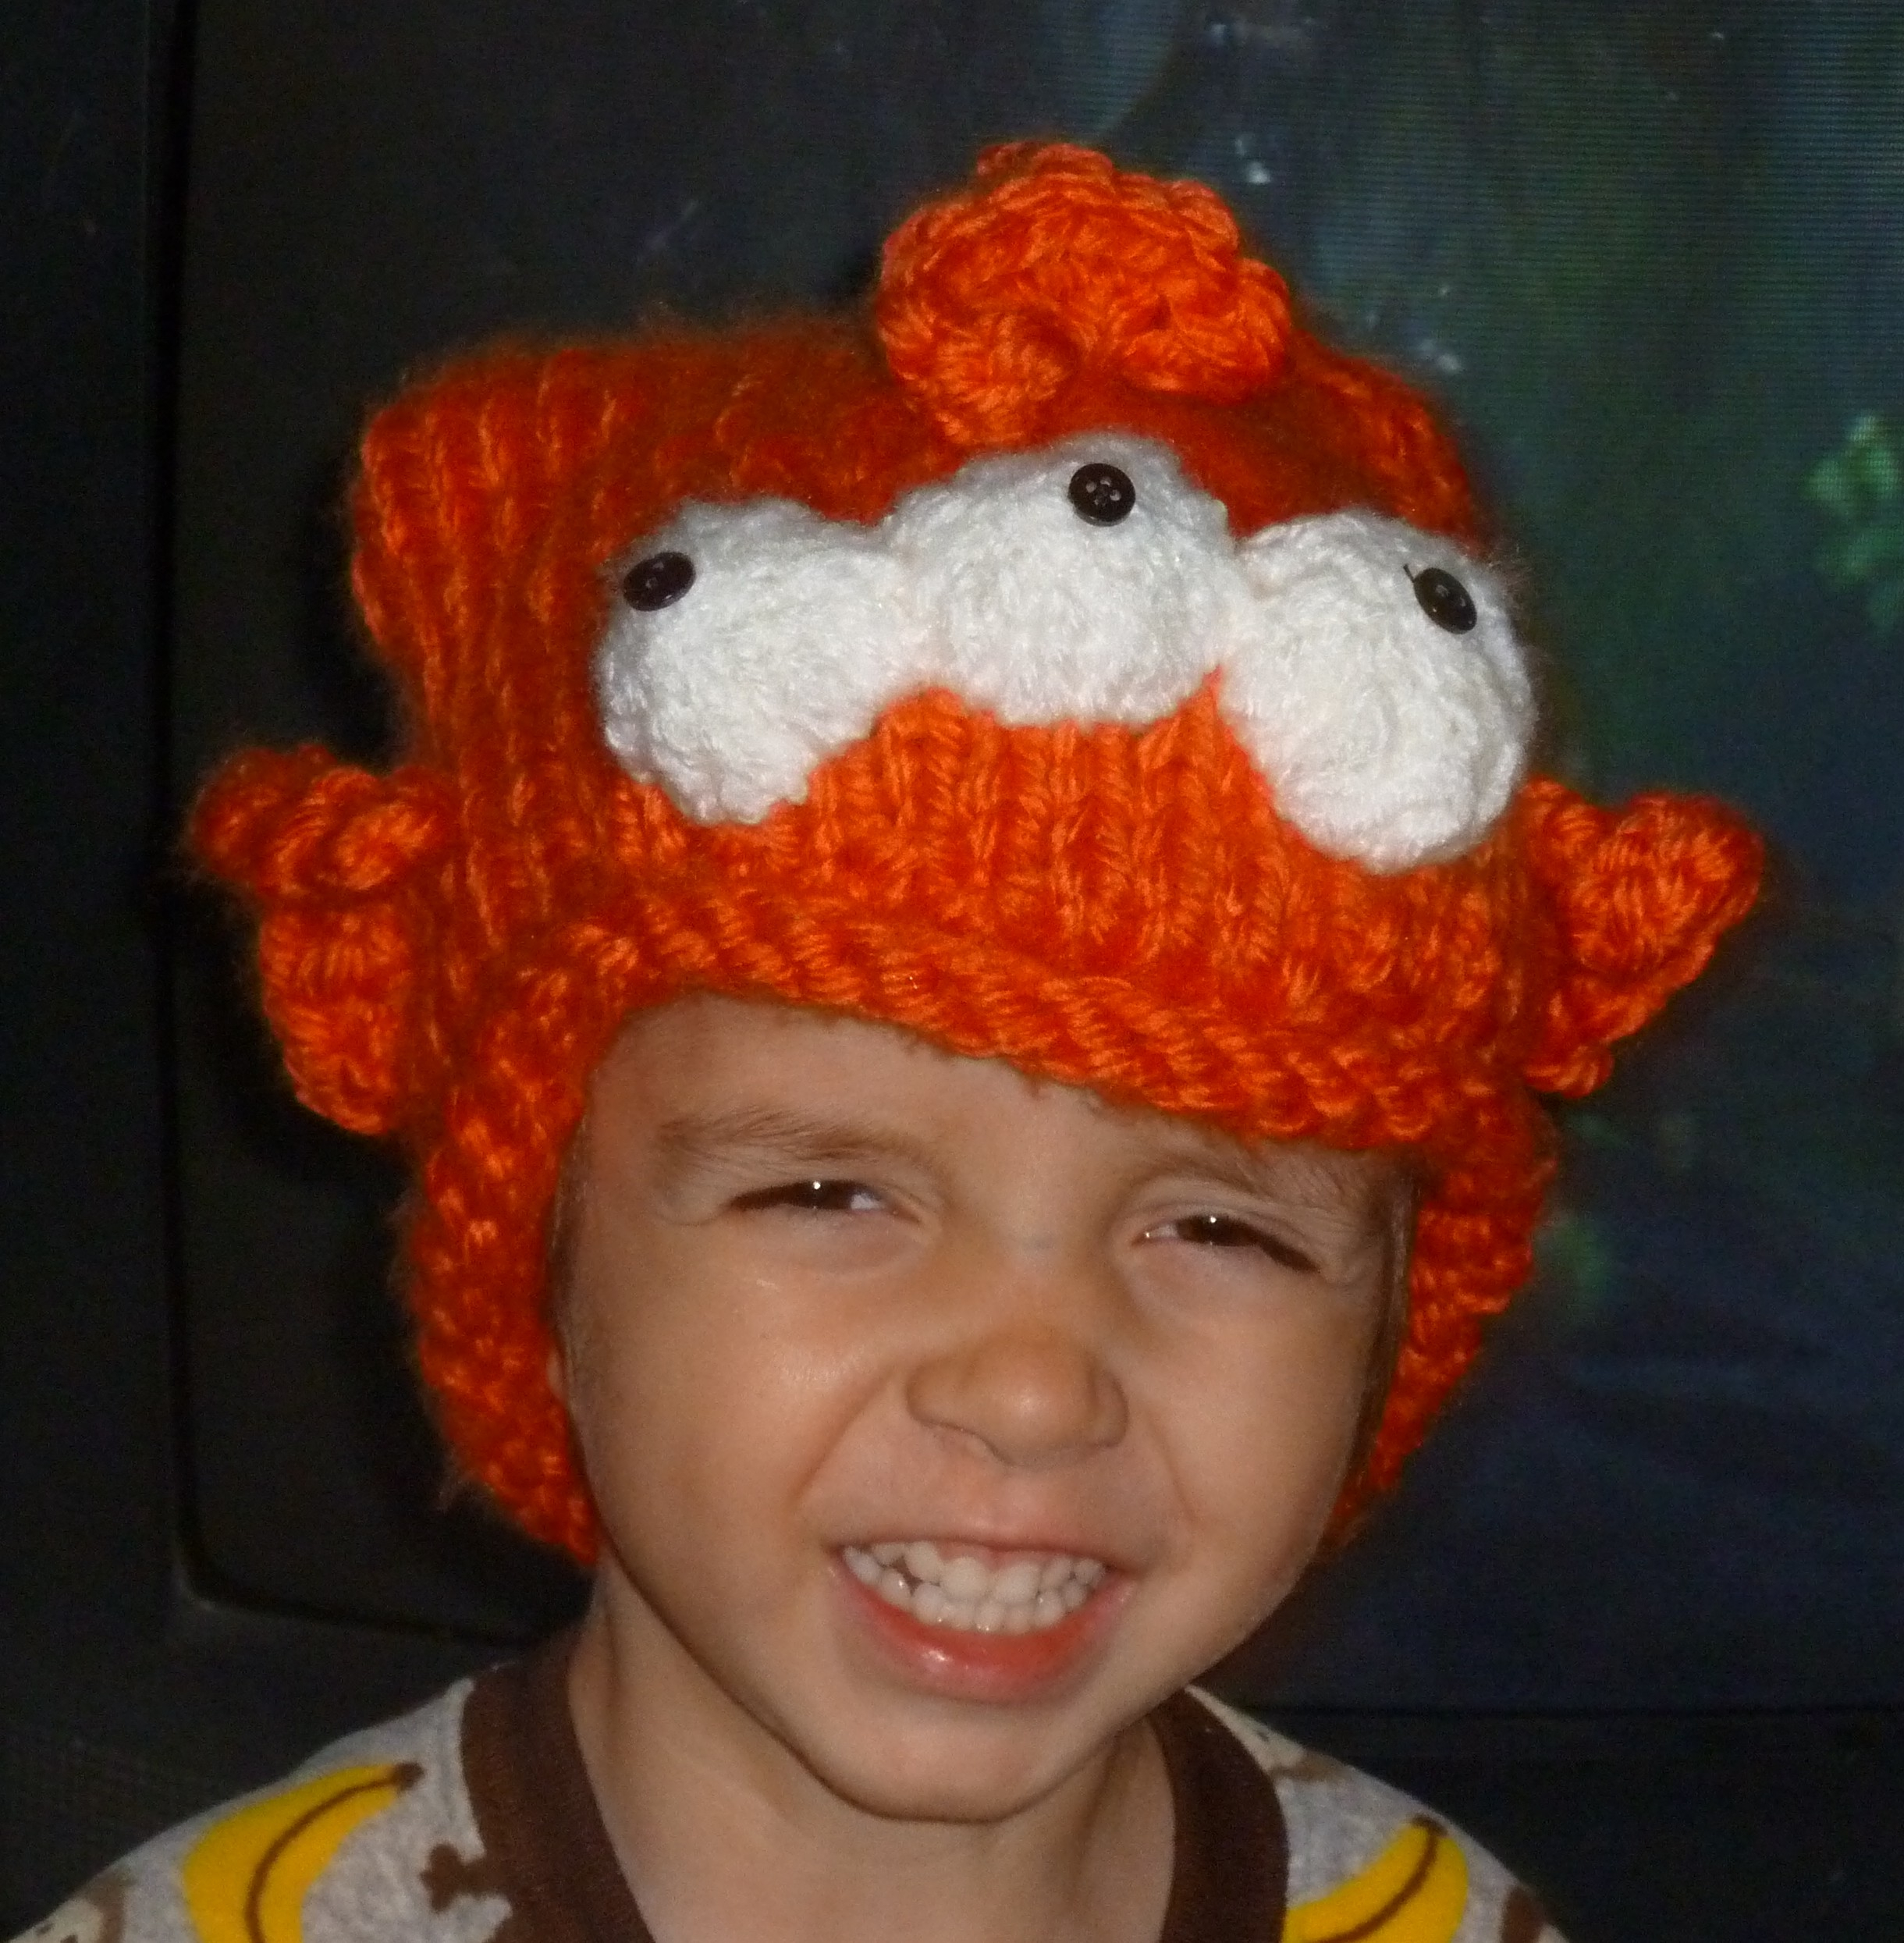 Free Knitting Patterns For Hats Uk Assorted Movie And Tv Knitting Patterns In The Loop Knitting